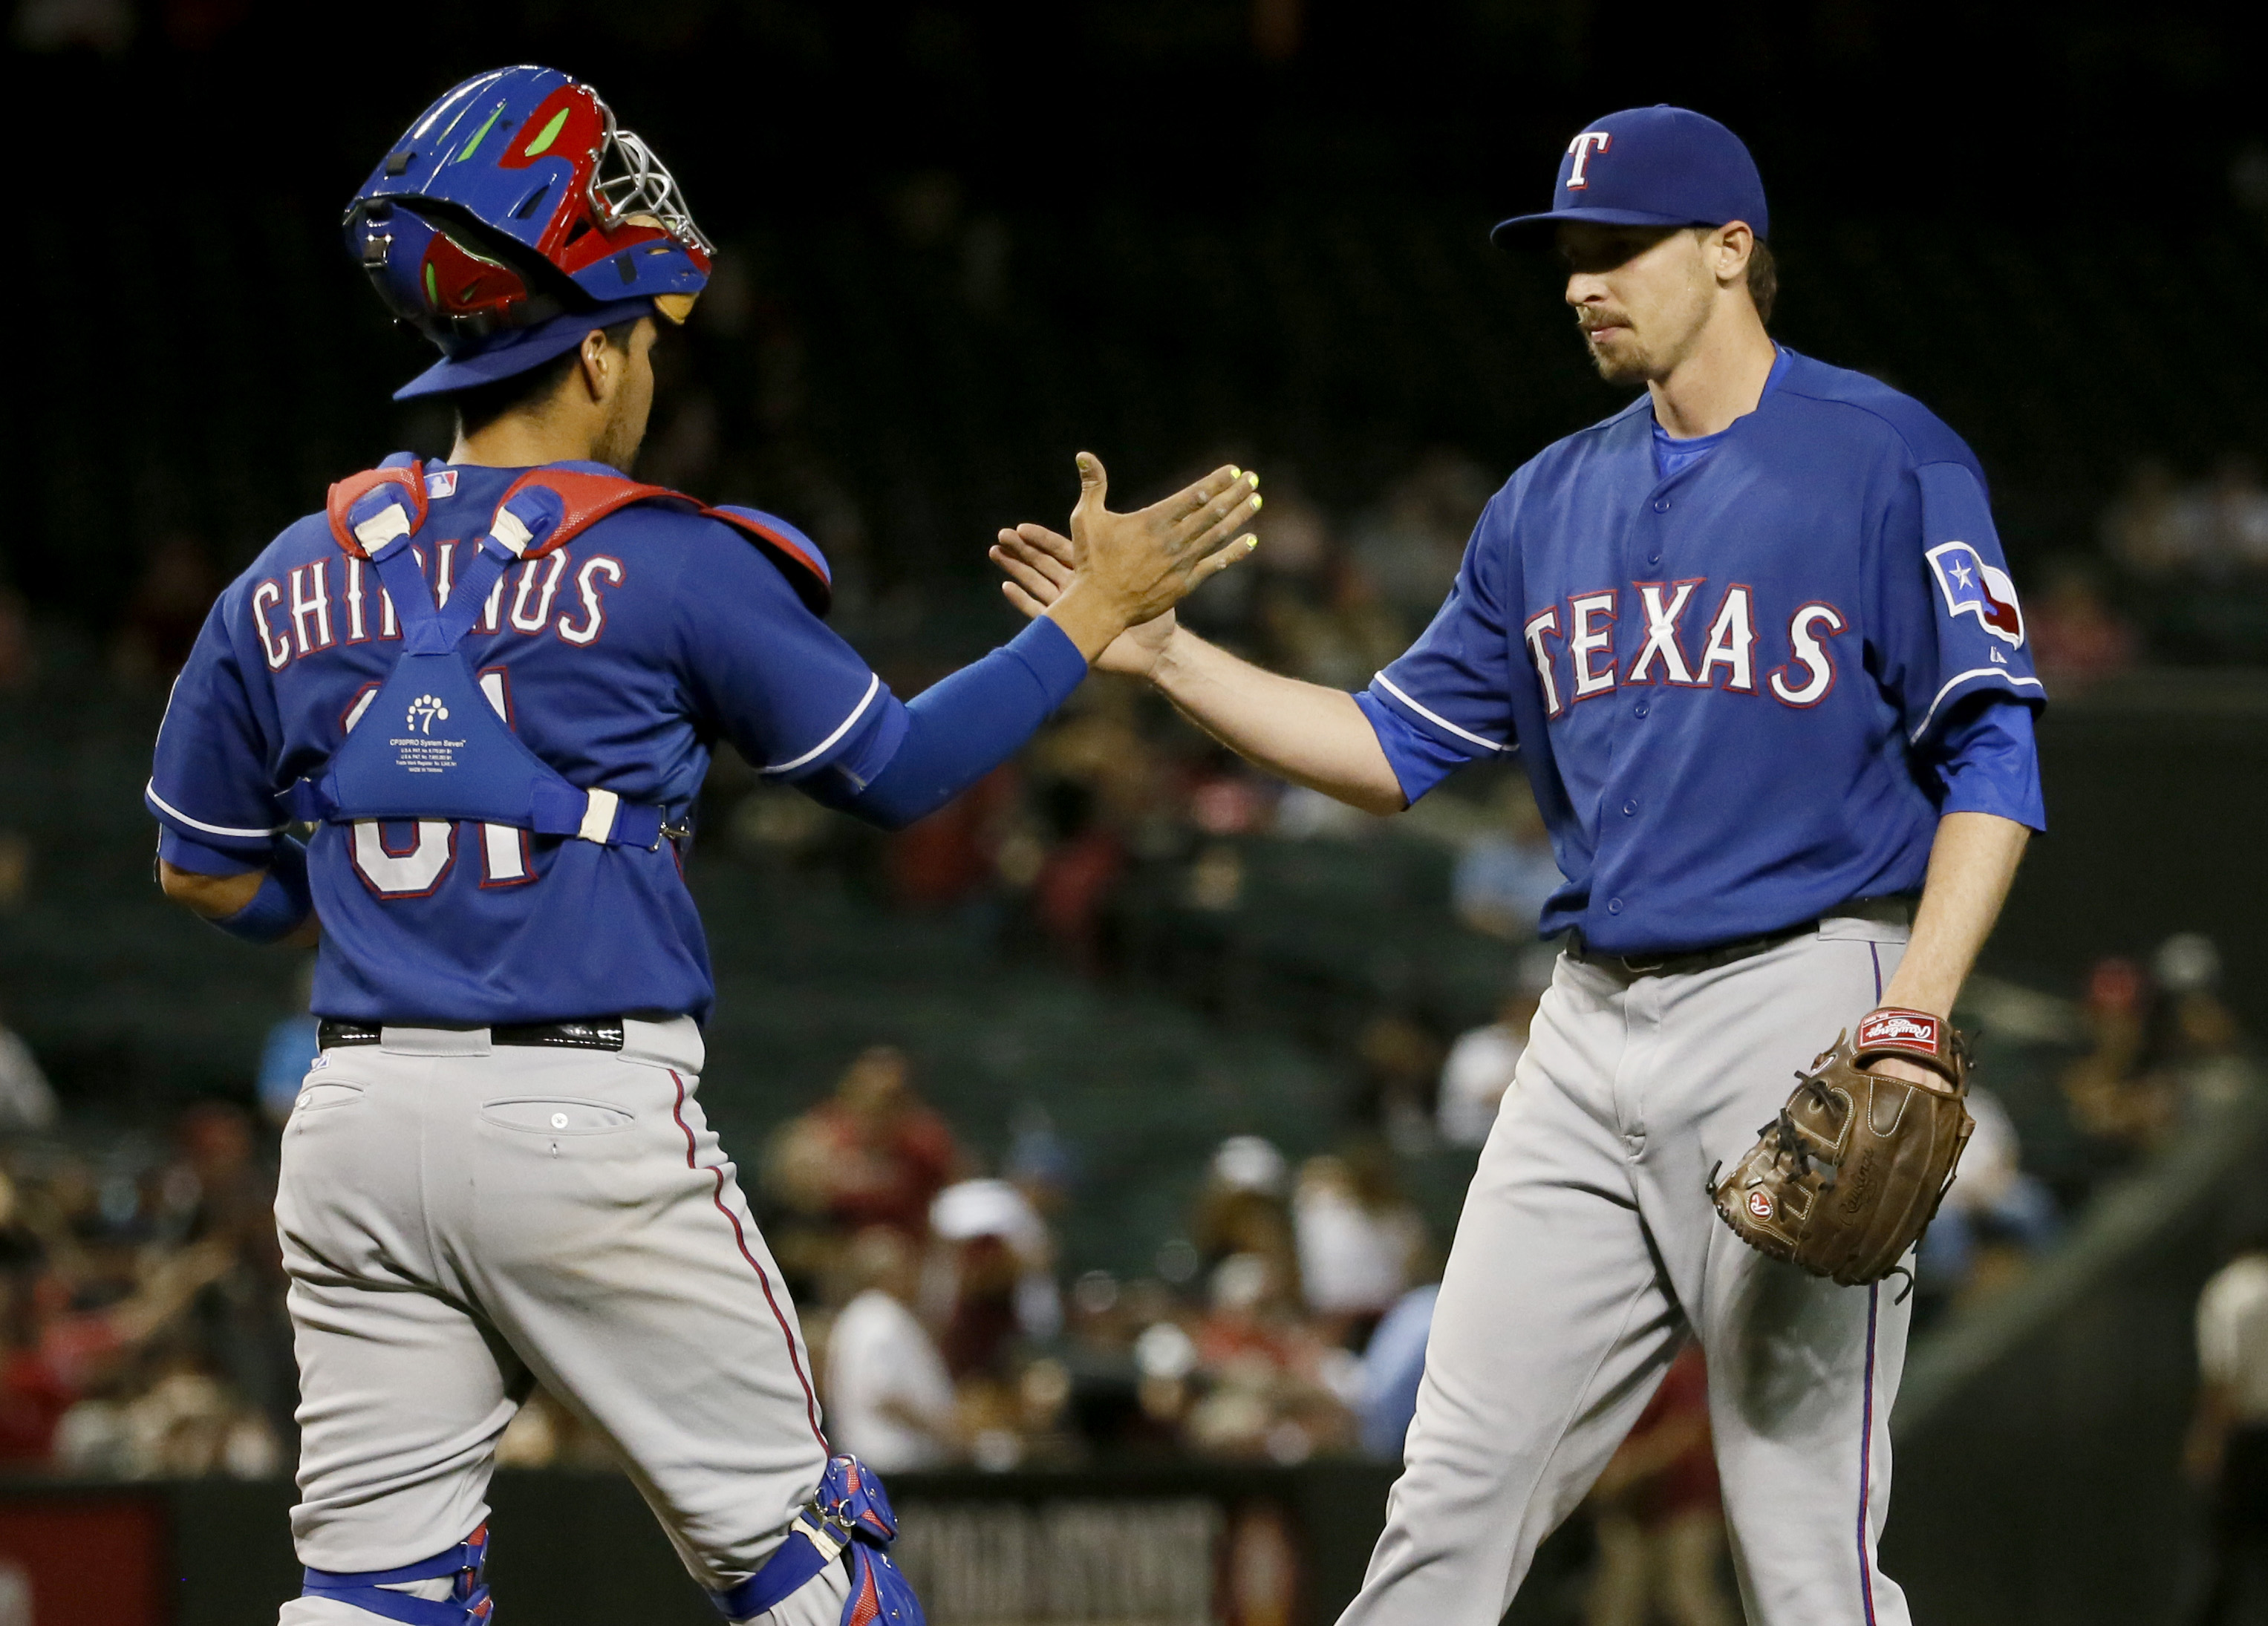 Texas Rangers catcher Robinson Chirinos, left, greets relief pitcher Tanner Scheppers after a baseball game against the Arizona Diamondbacks, Tuesday, April 21, 2015, in Phoenix.  The Rangers won 7-1. (AP Photo/Matt York)